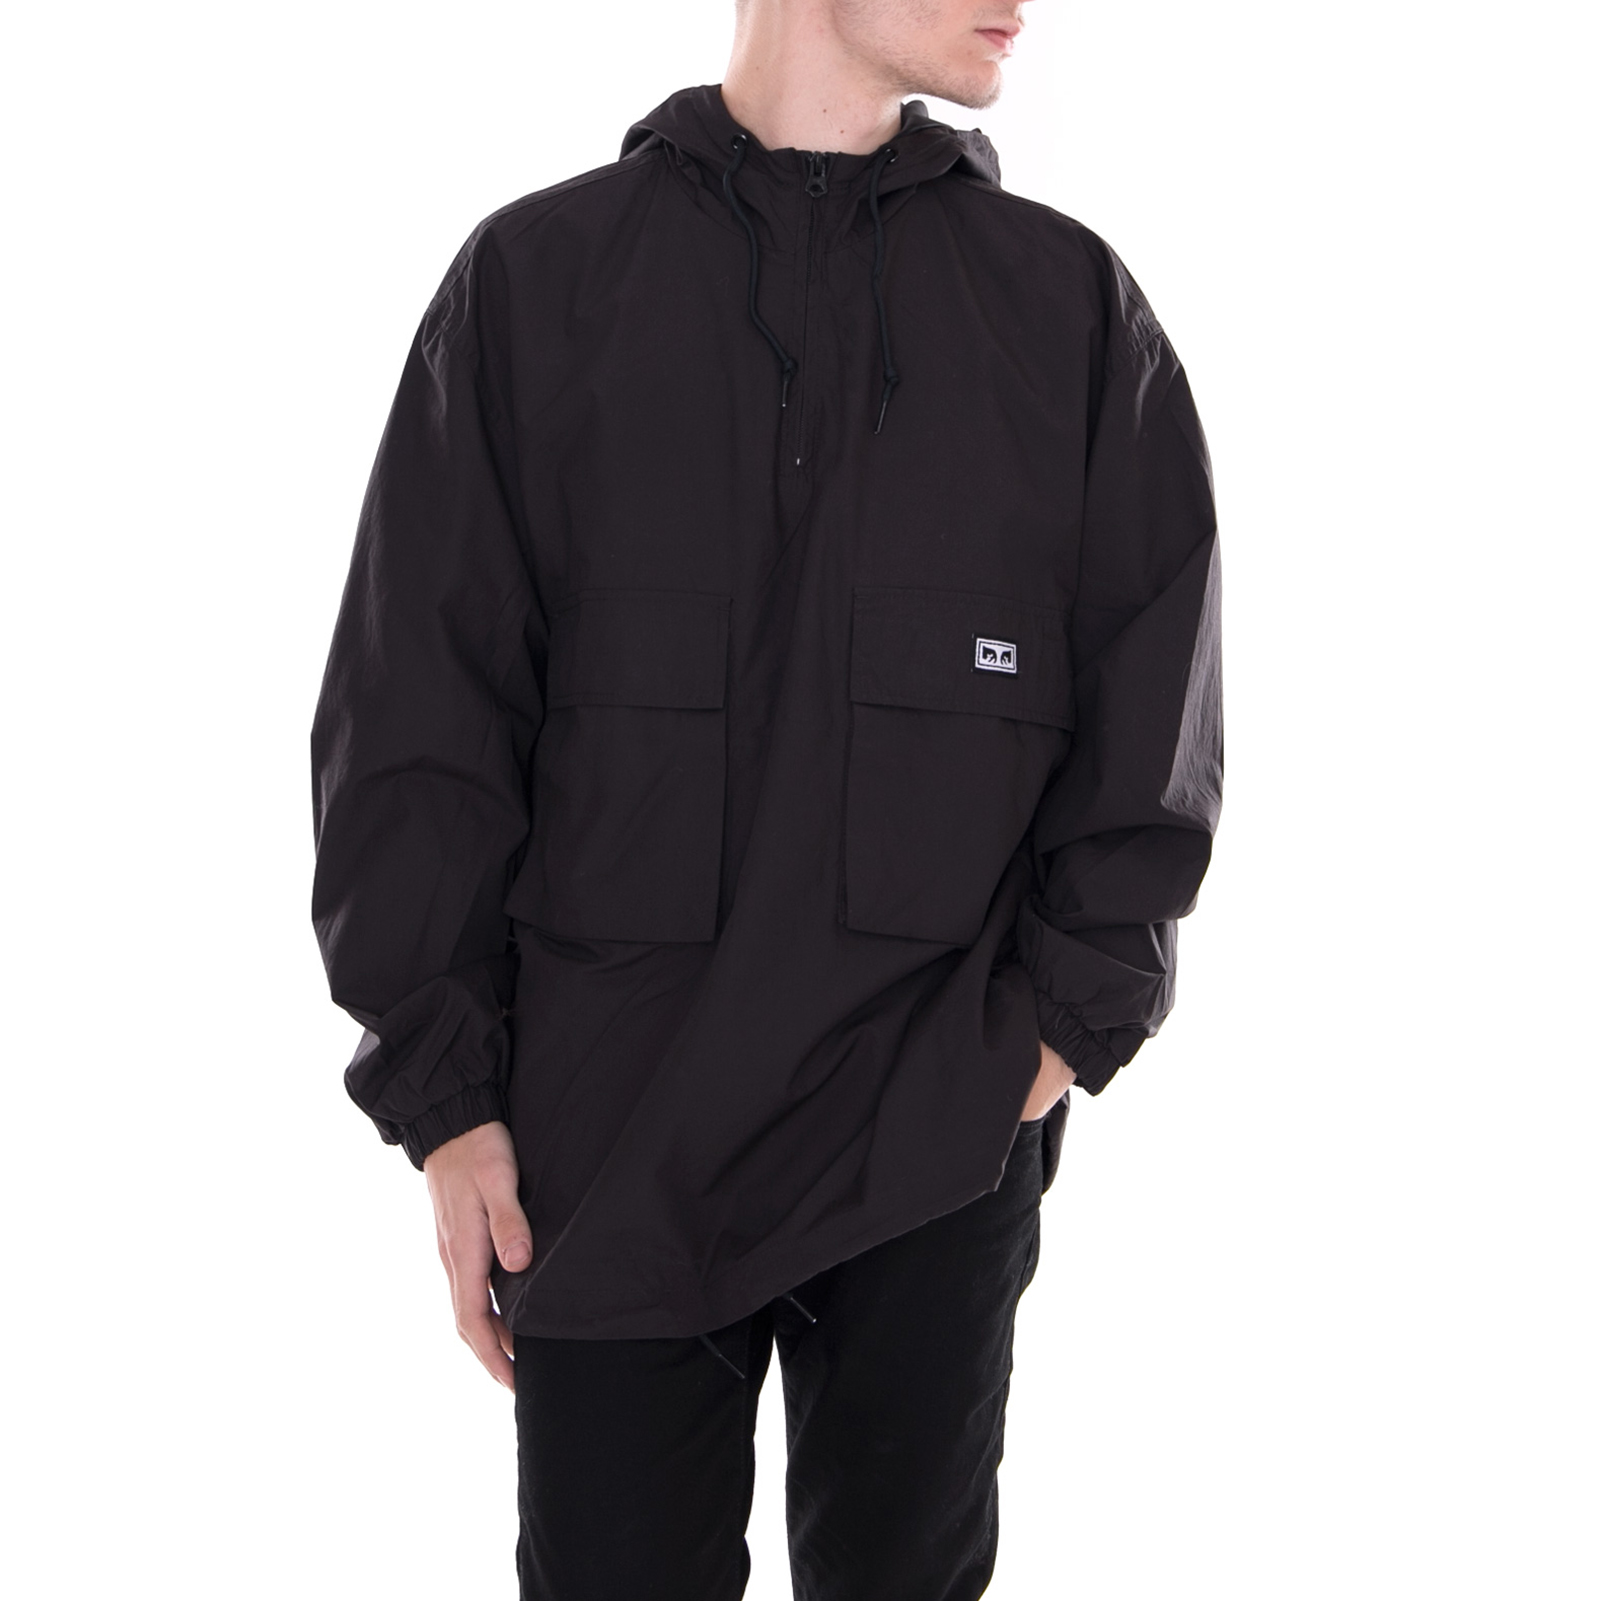 Nero Obey Giacche Black Lock Down Anorak 77vxpUB